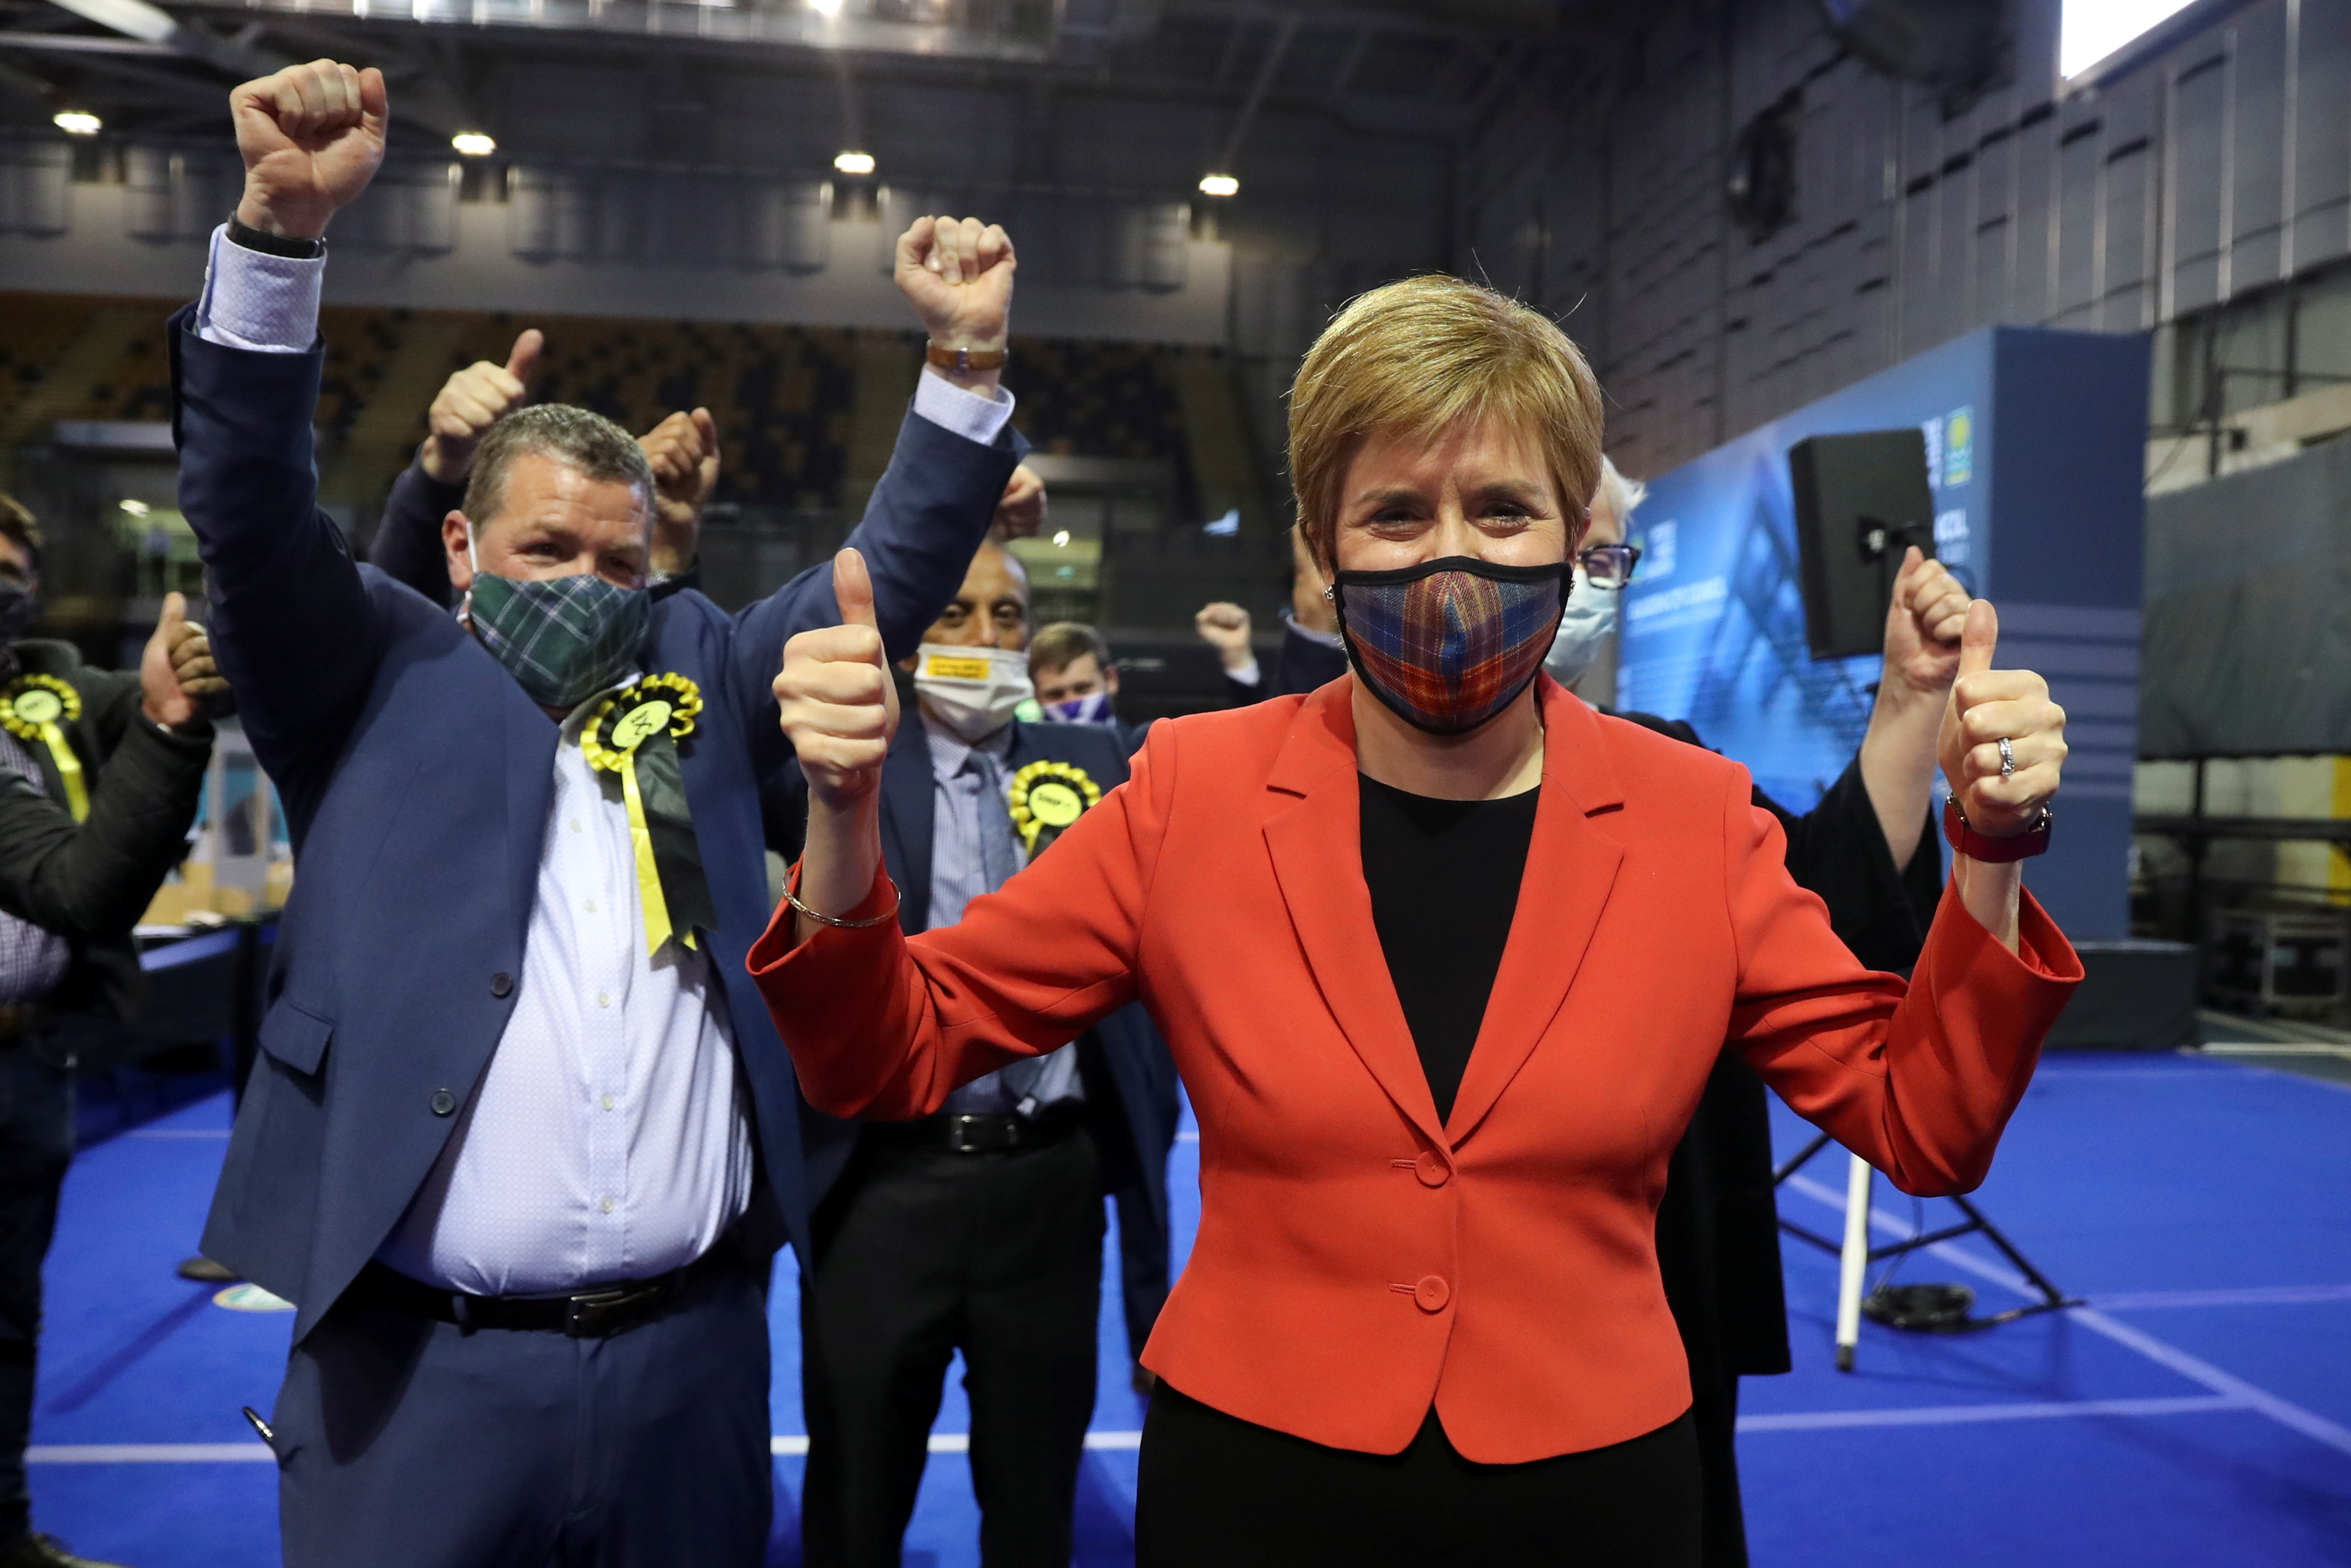 Scottish First Minister Nicola Sturgeon gestures as she visits a counting centre as votes are counted for the Scottish Parliamentary election, in Glasgow, Scotland, Britain, May 7, 2021. REUTERS/Russell Cheyne